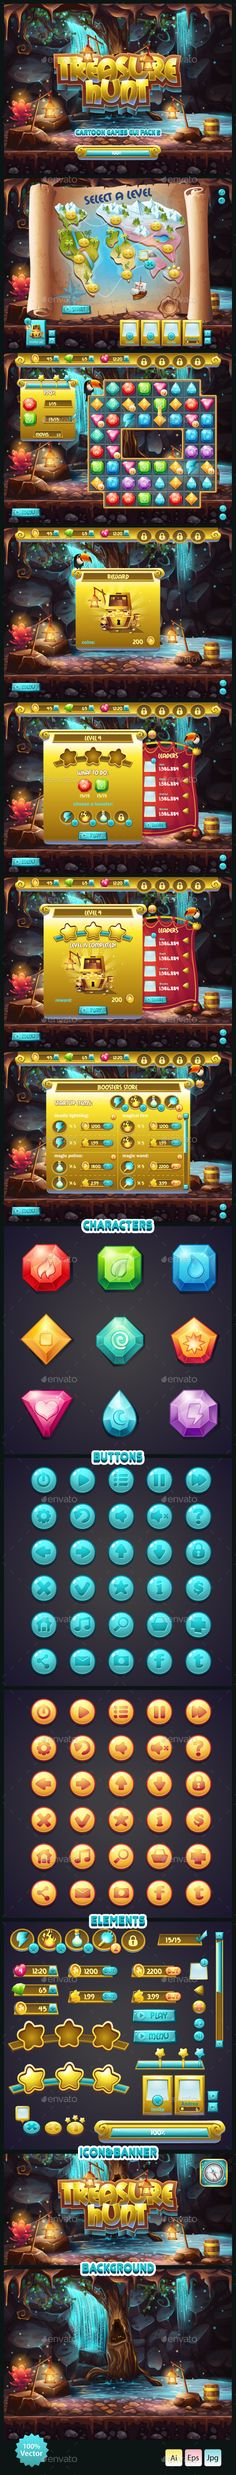 GUI Treasure Hunt - User Interfaces #Game #Assets | Download http://graphicriver.net/item/gui-treasure-hunt/10638211?ref=sinzo